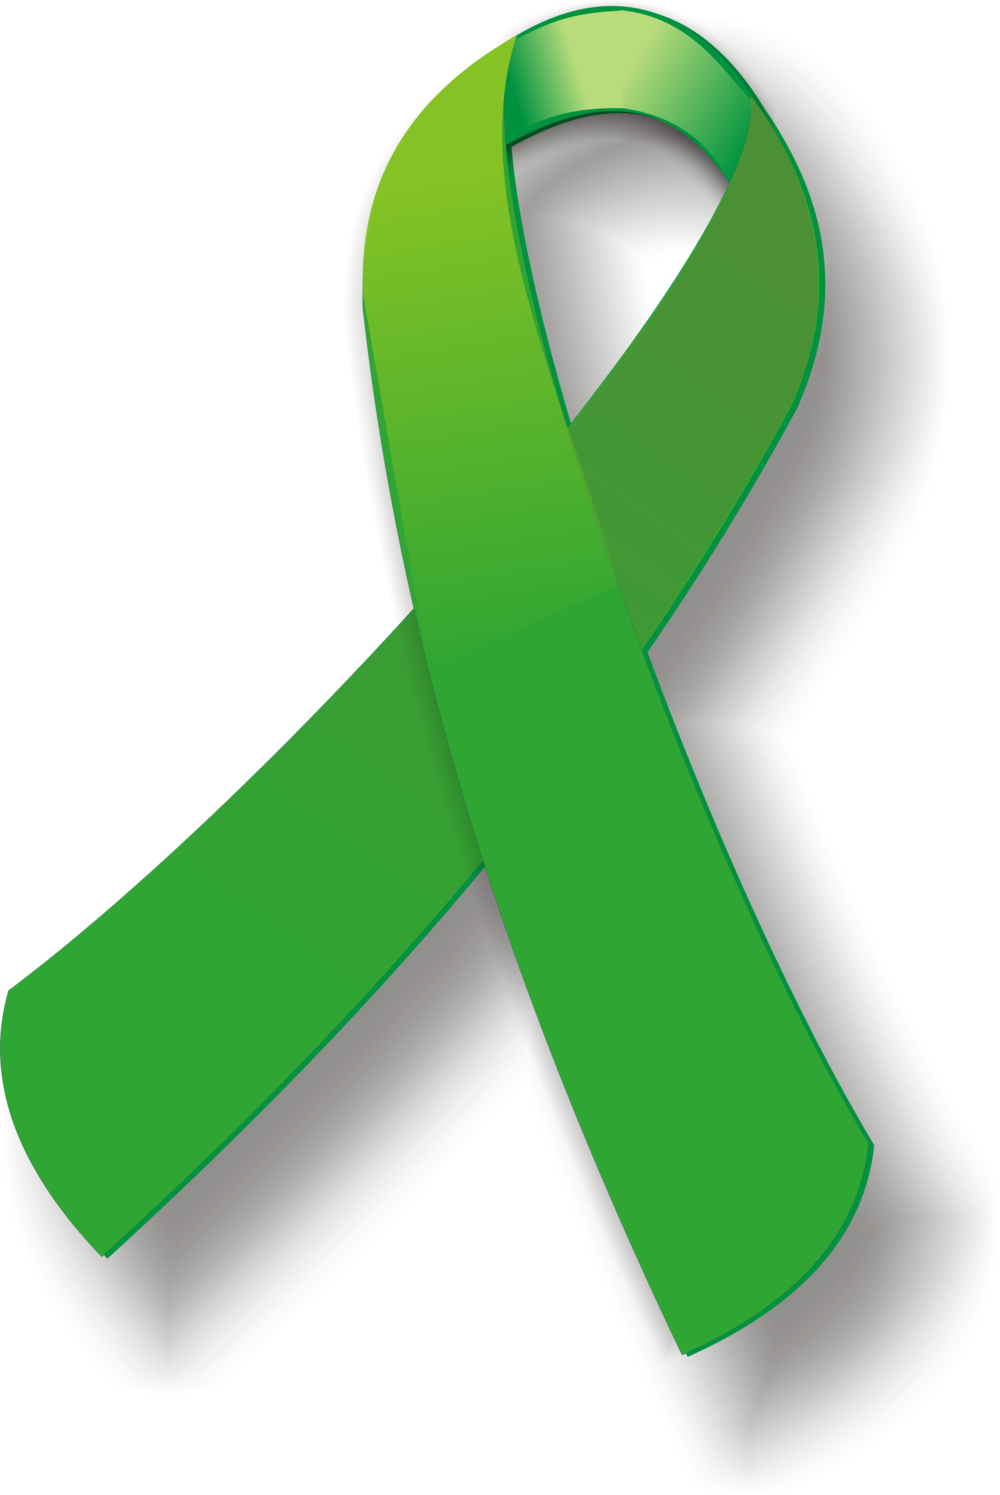 - A green ribbon is used to raise awareness of mental health issues including mental illness, depression, bipolar, and traumatic brain injuries.